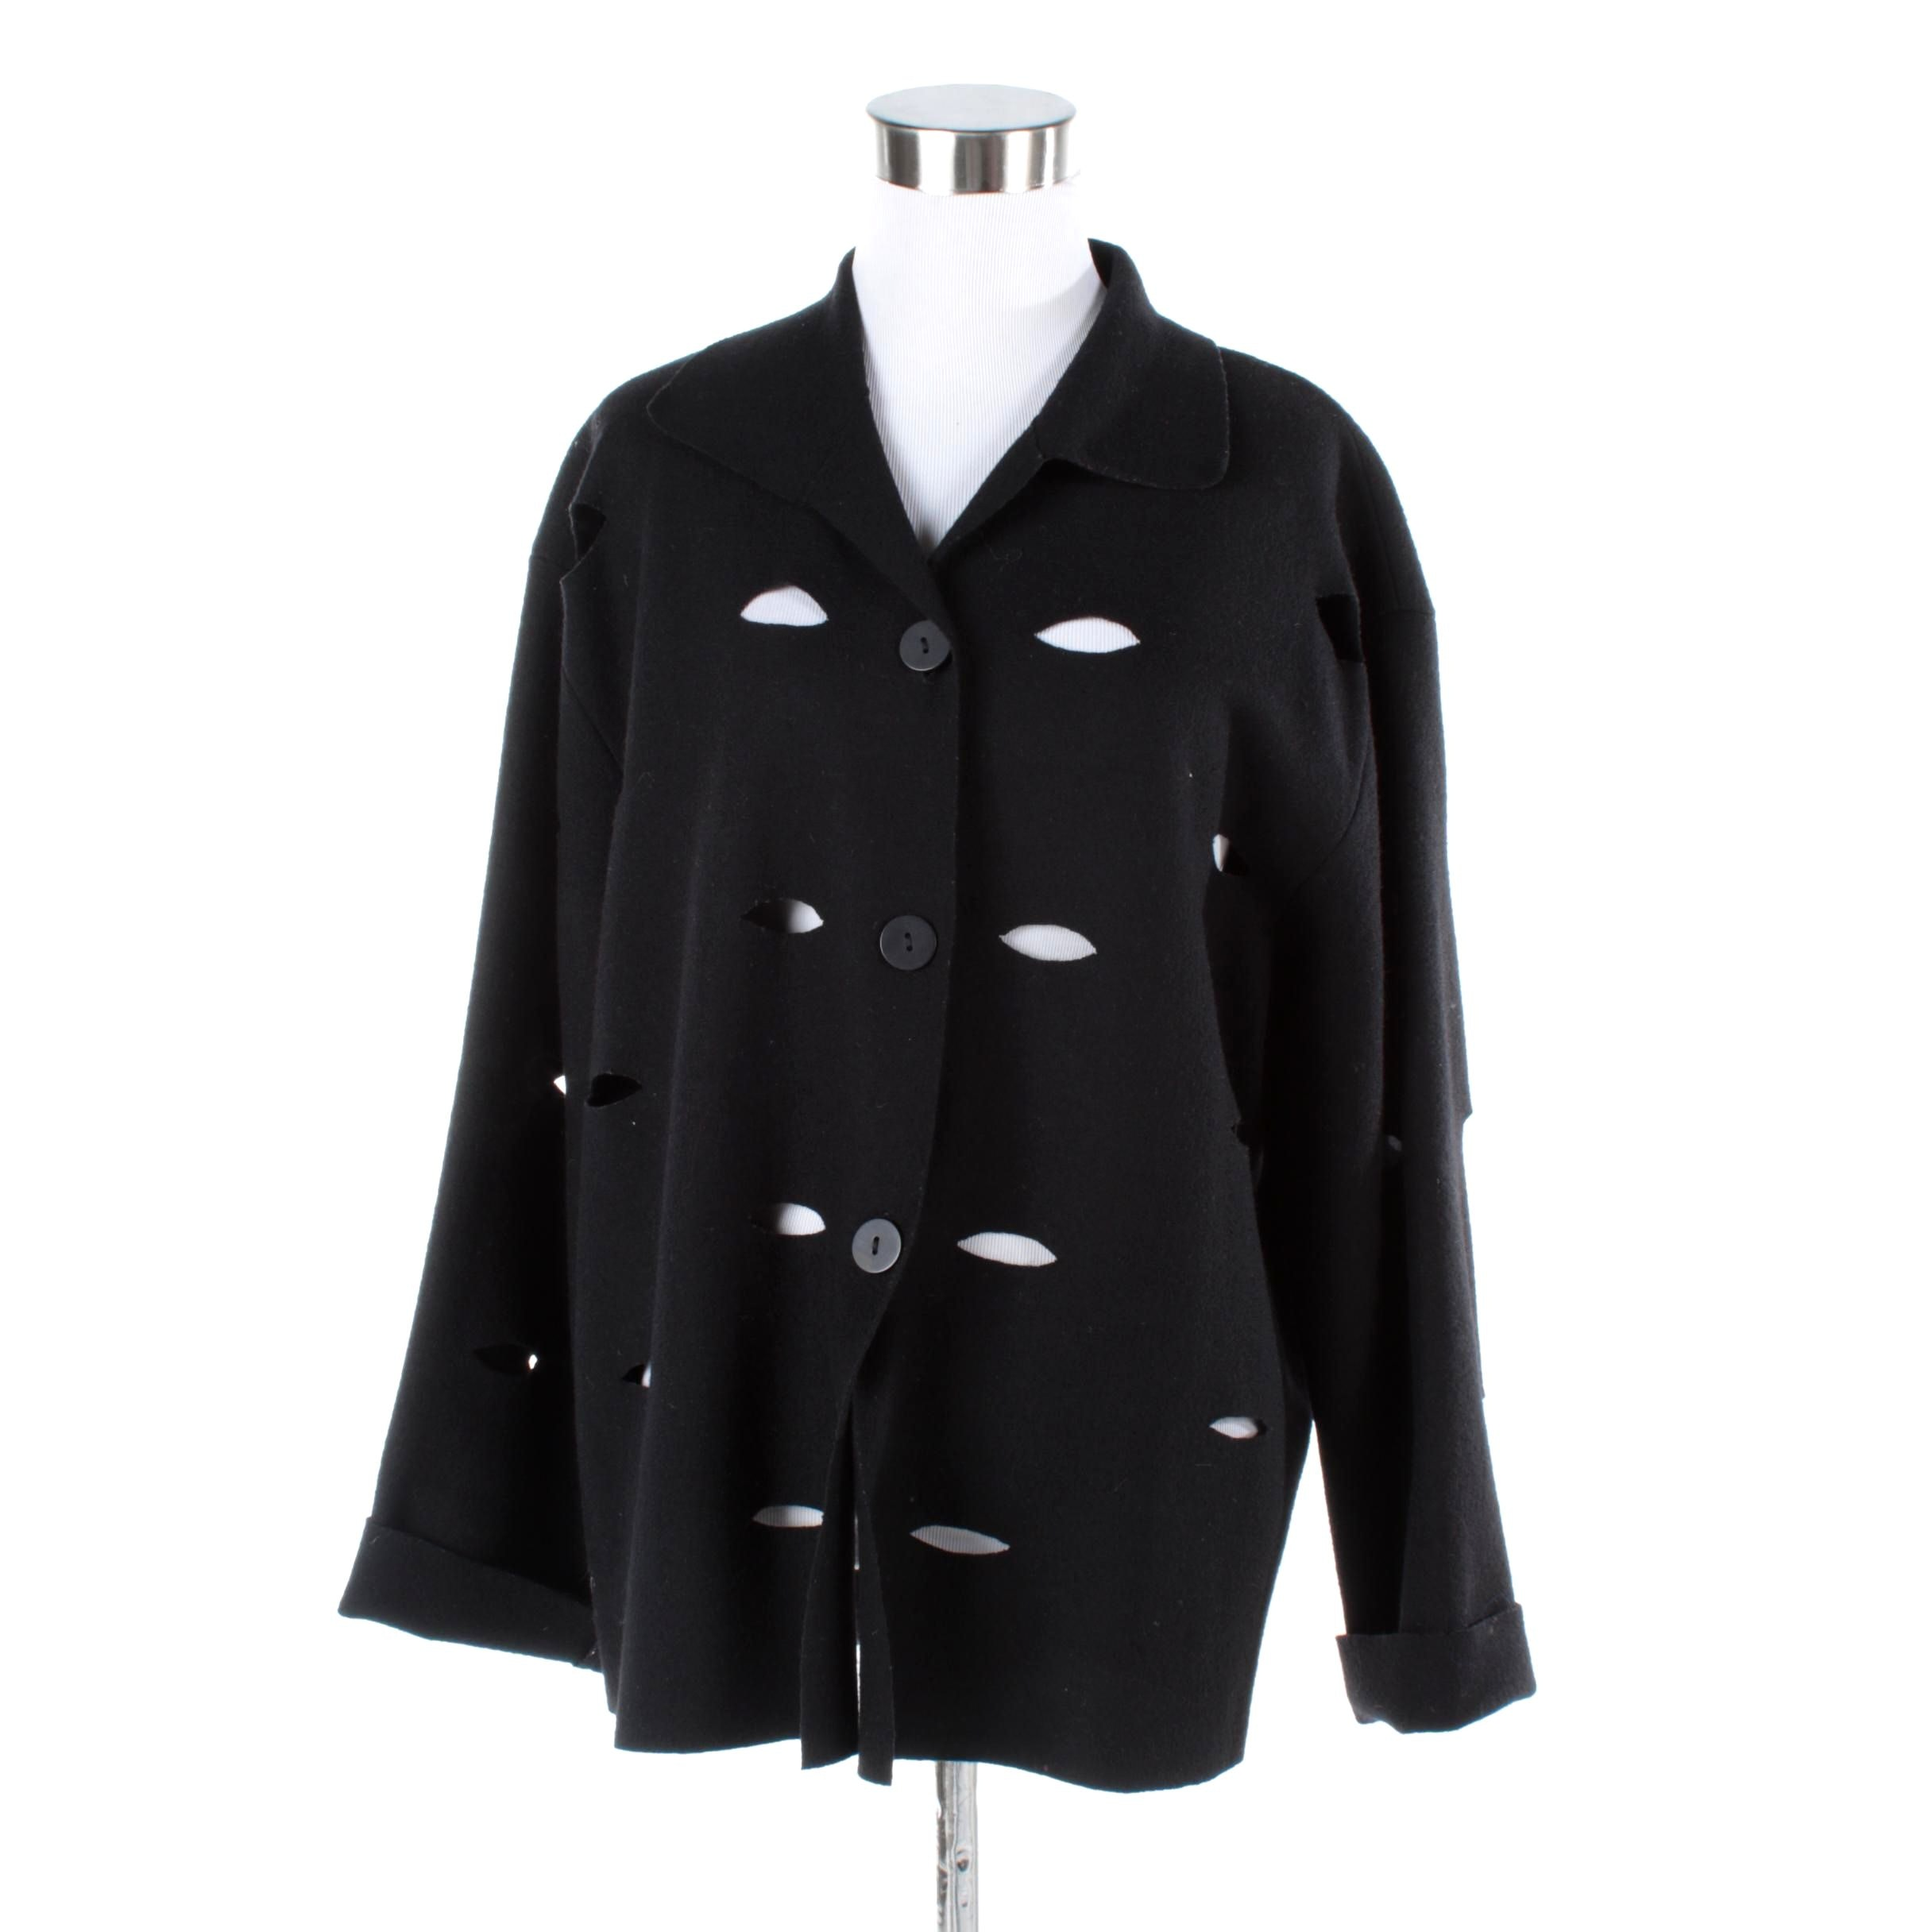 Women's Kiaoyan Lin Jacket with Hole Accents